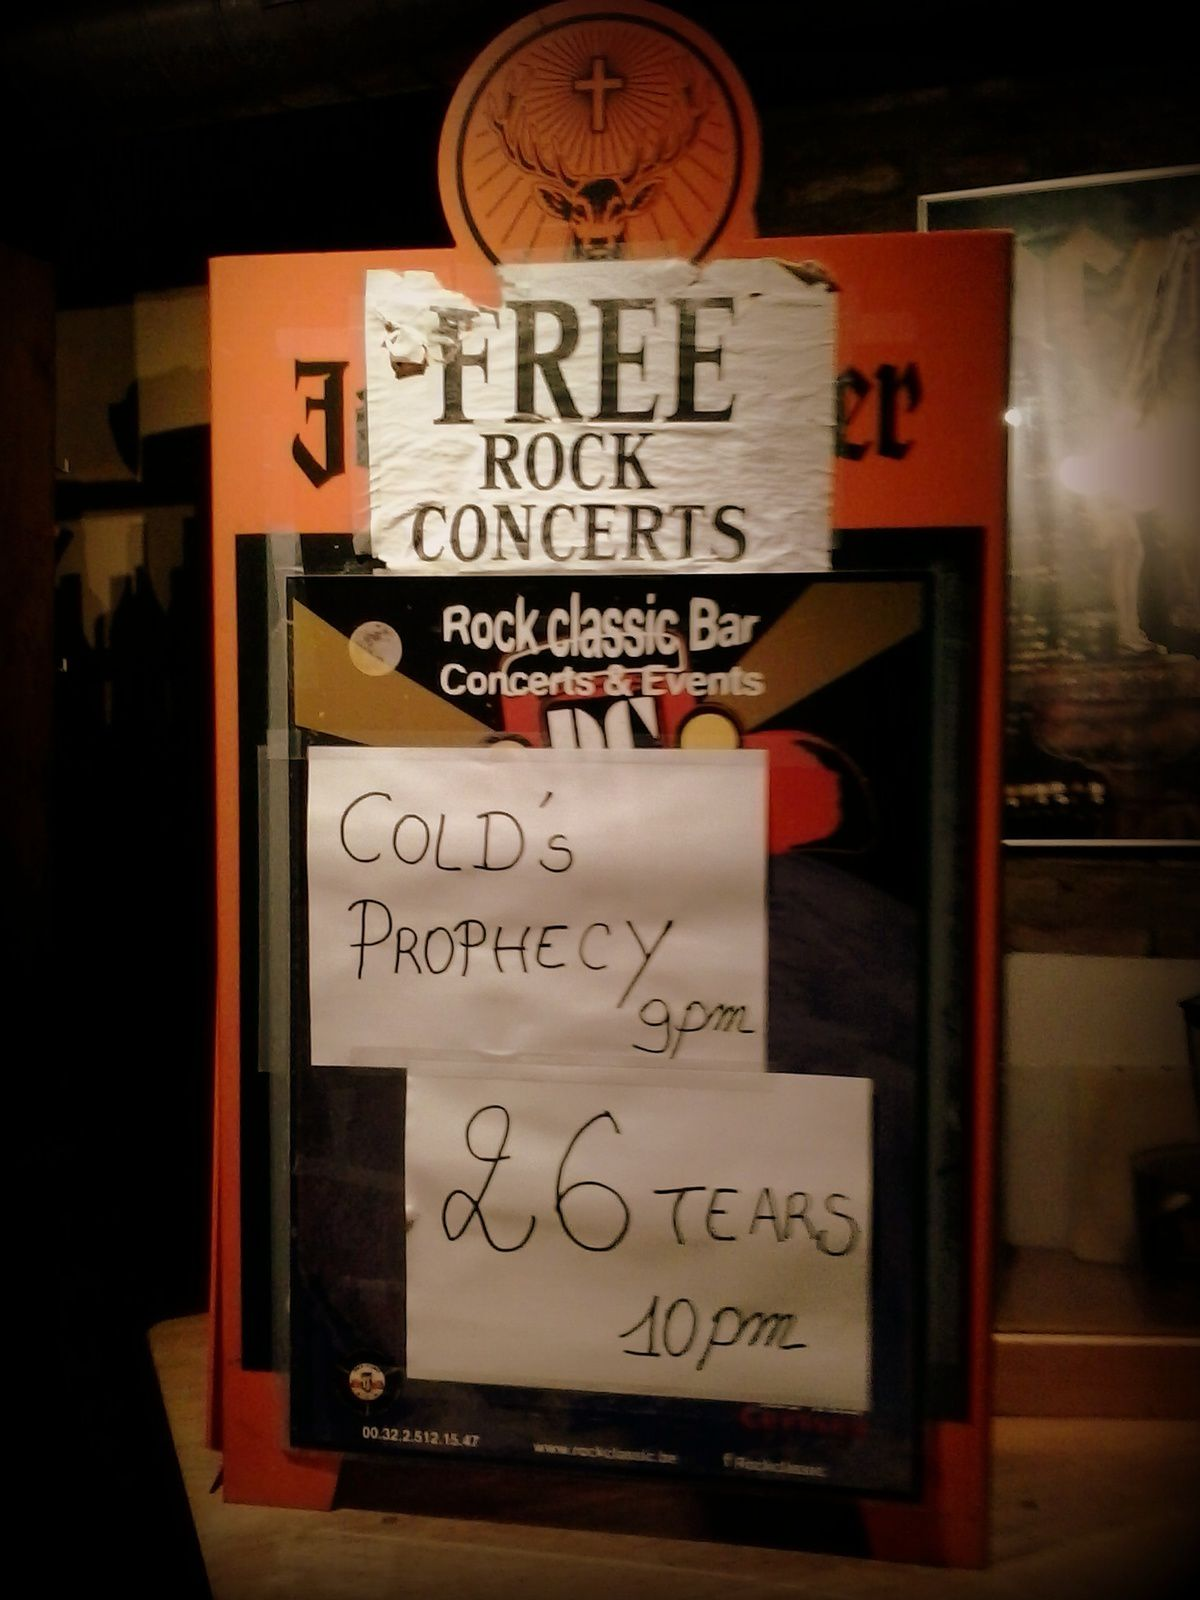 Cold's prophecy + Twenty Six Tears @ Rock Classic - 13/11/2015